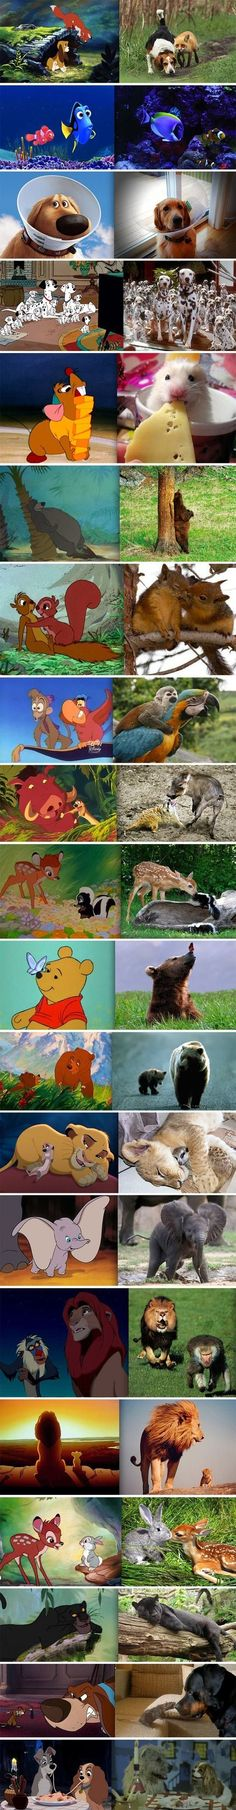 Disney animals in real life. Lol